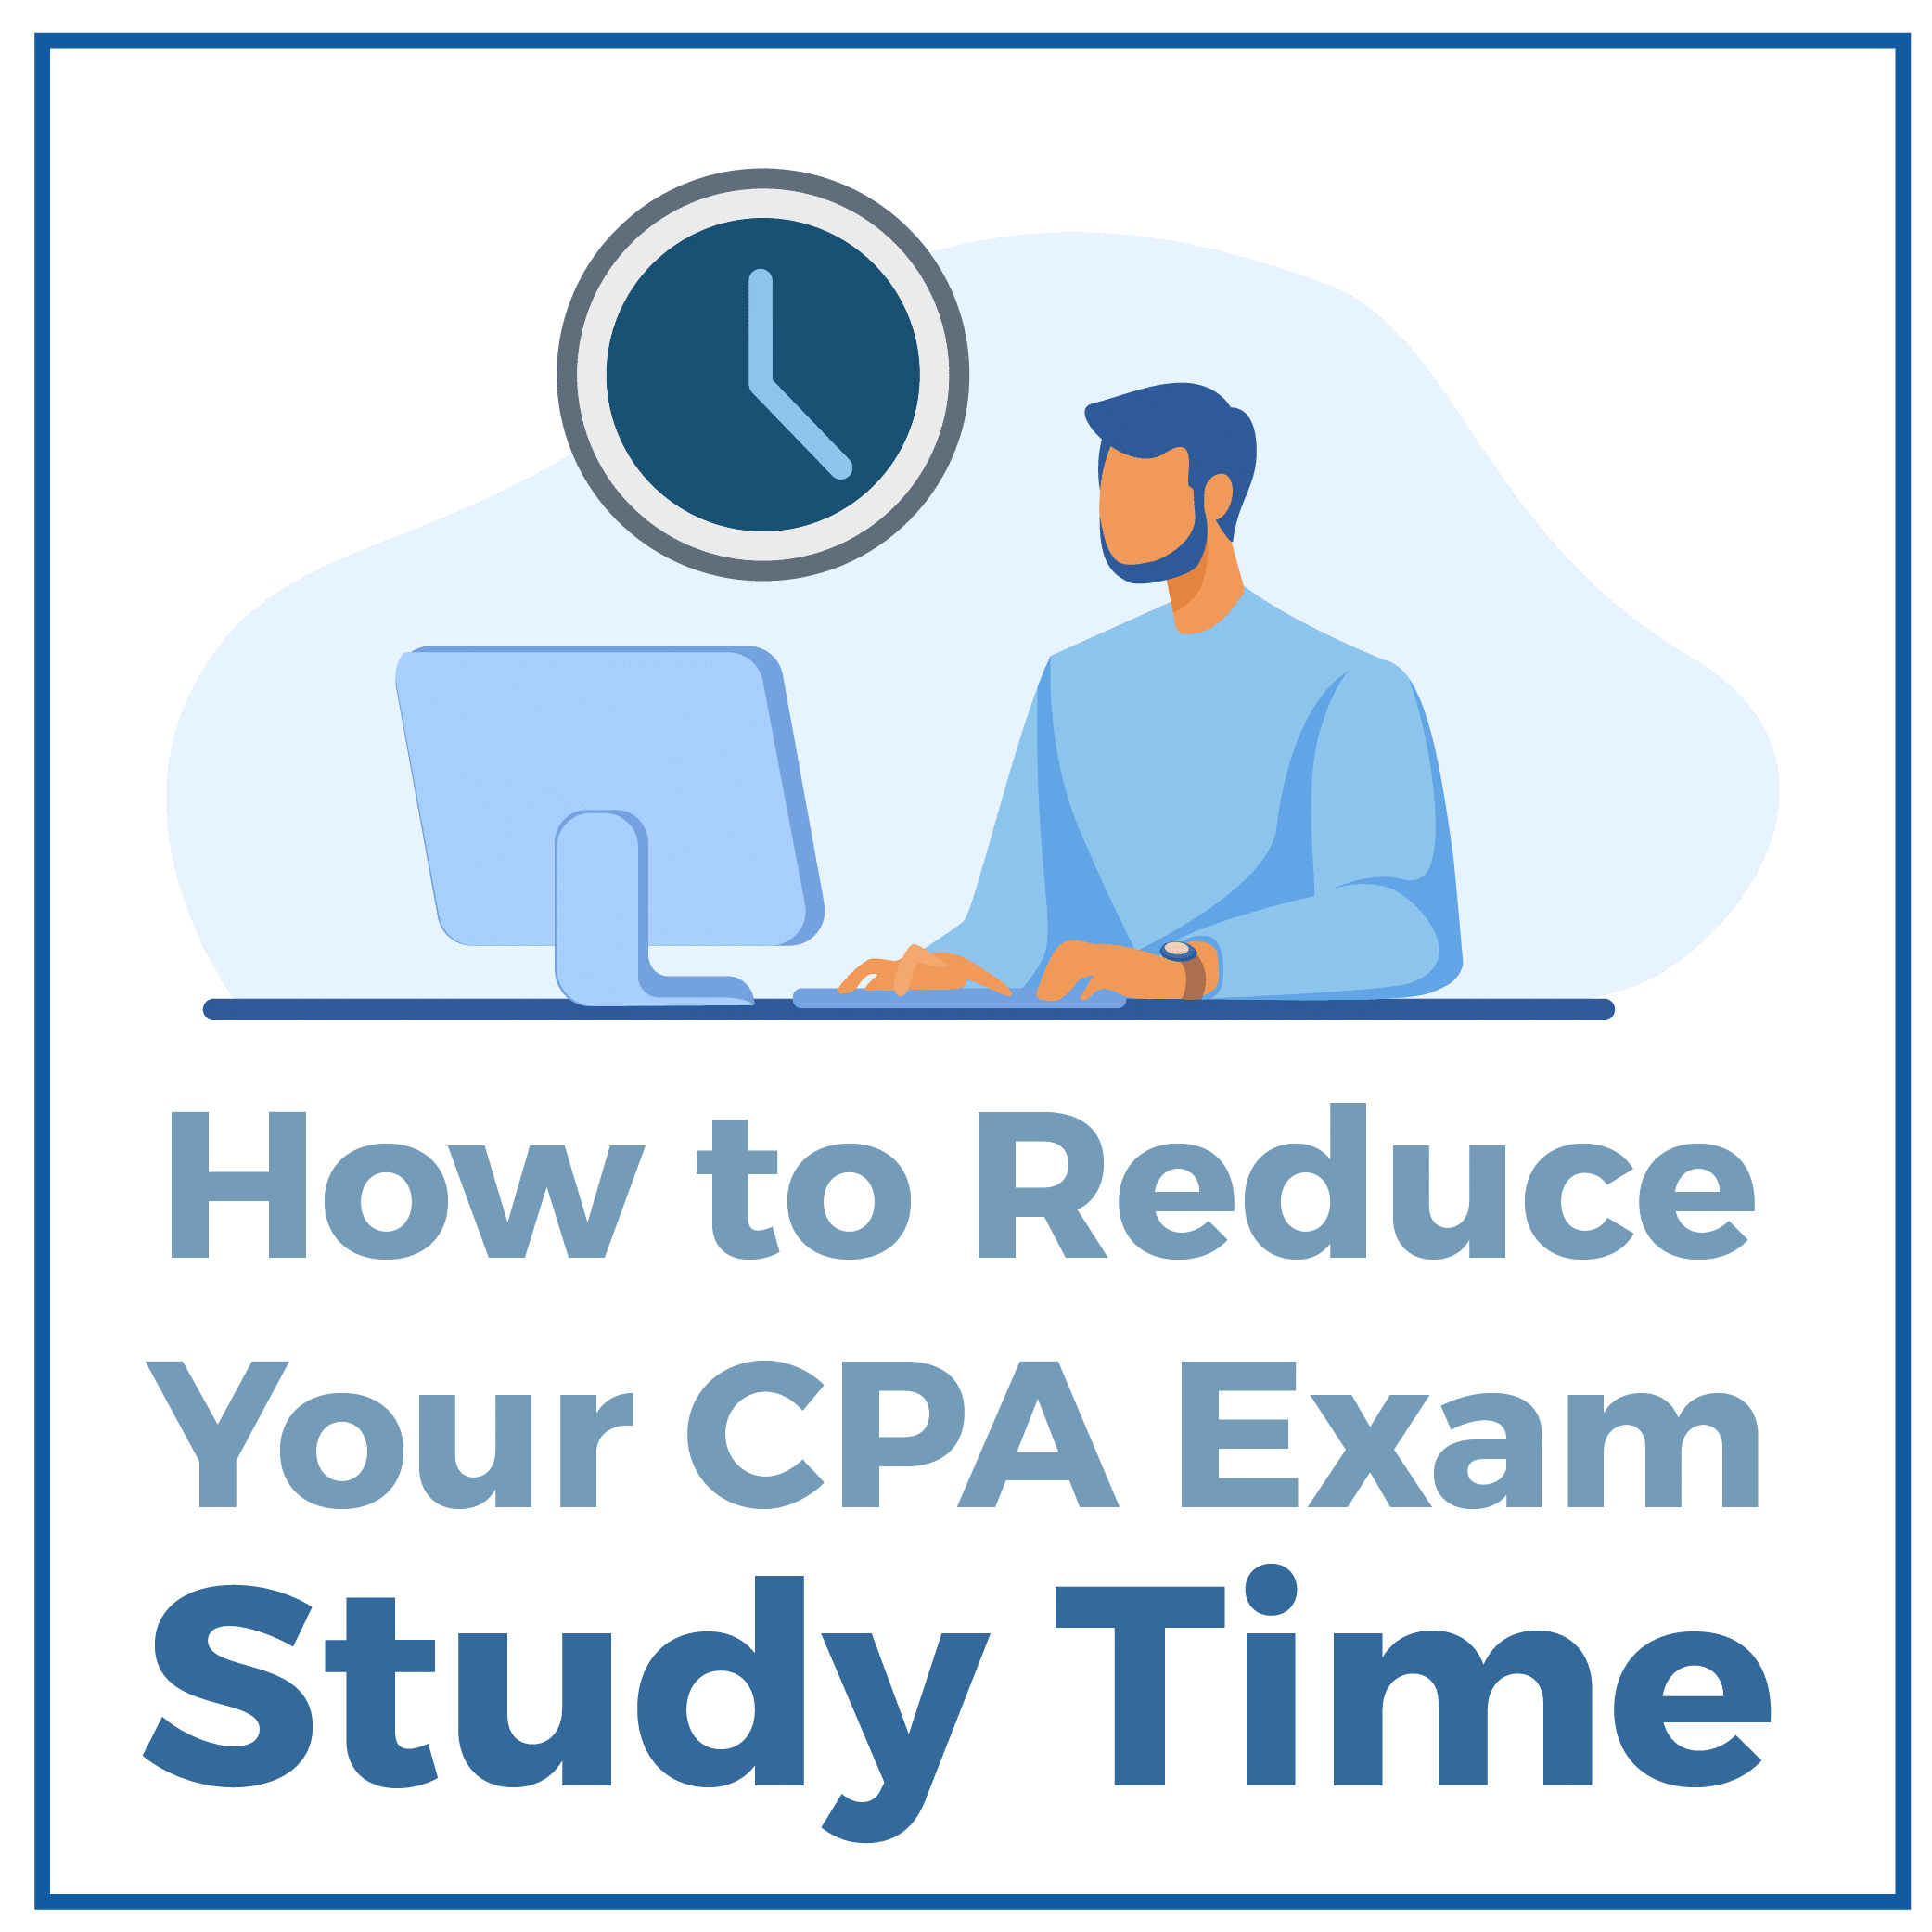 How to Reduce Your CPA Exam Study Time